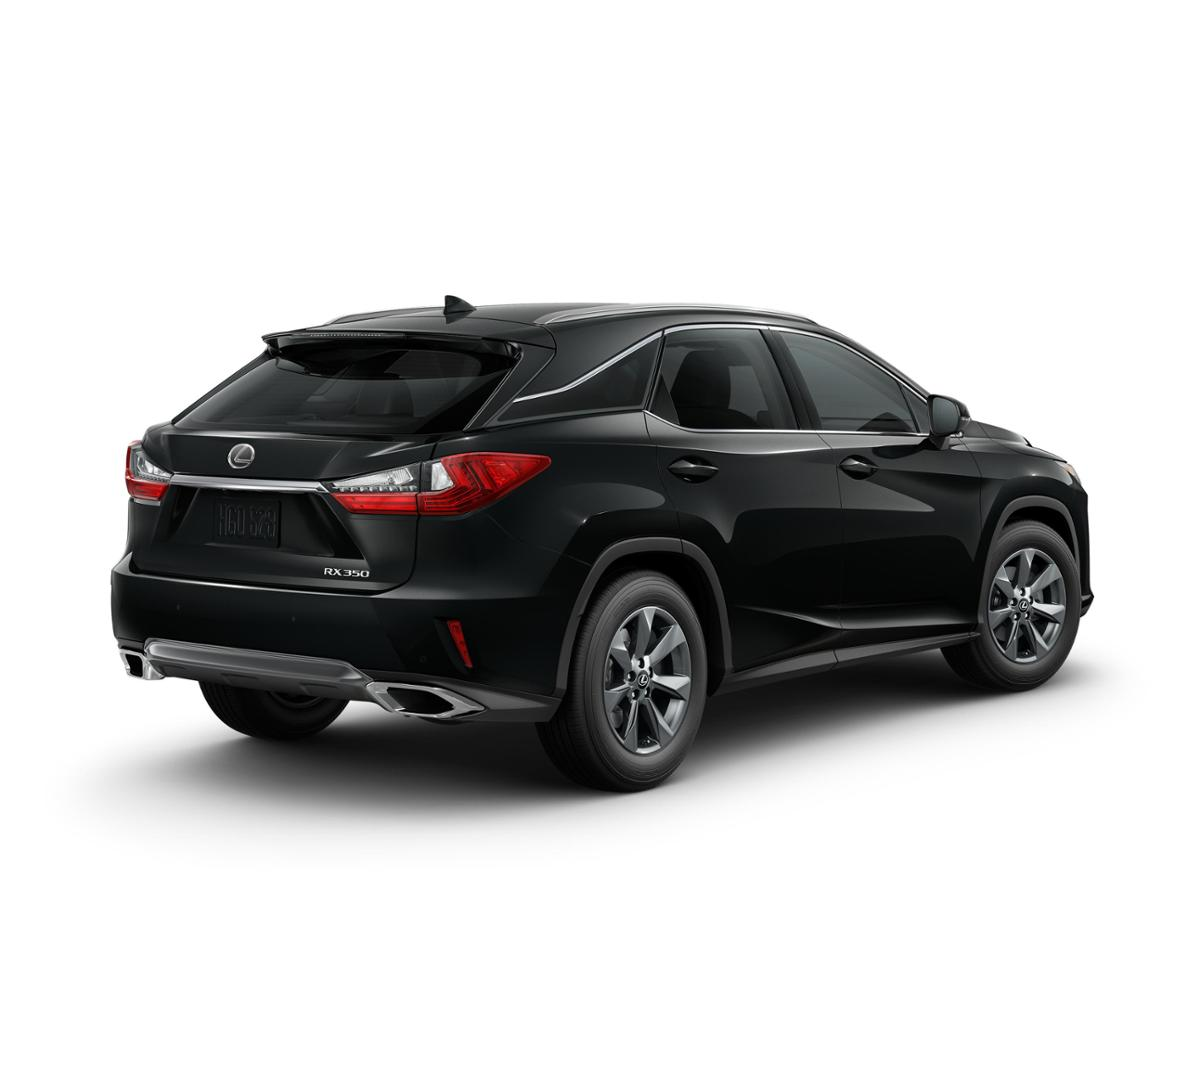 Lexus Rx 350 Lease: New Obsidian 2019 Lexus RX 350 In West Palm Beach, FL